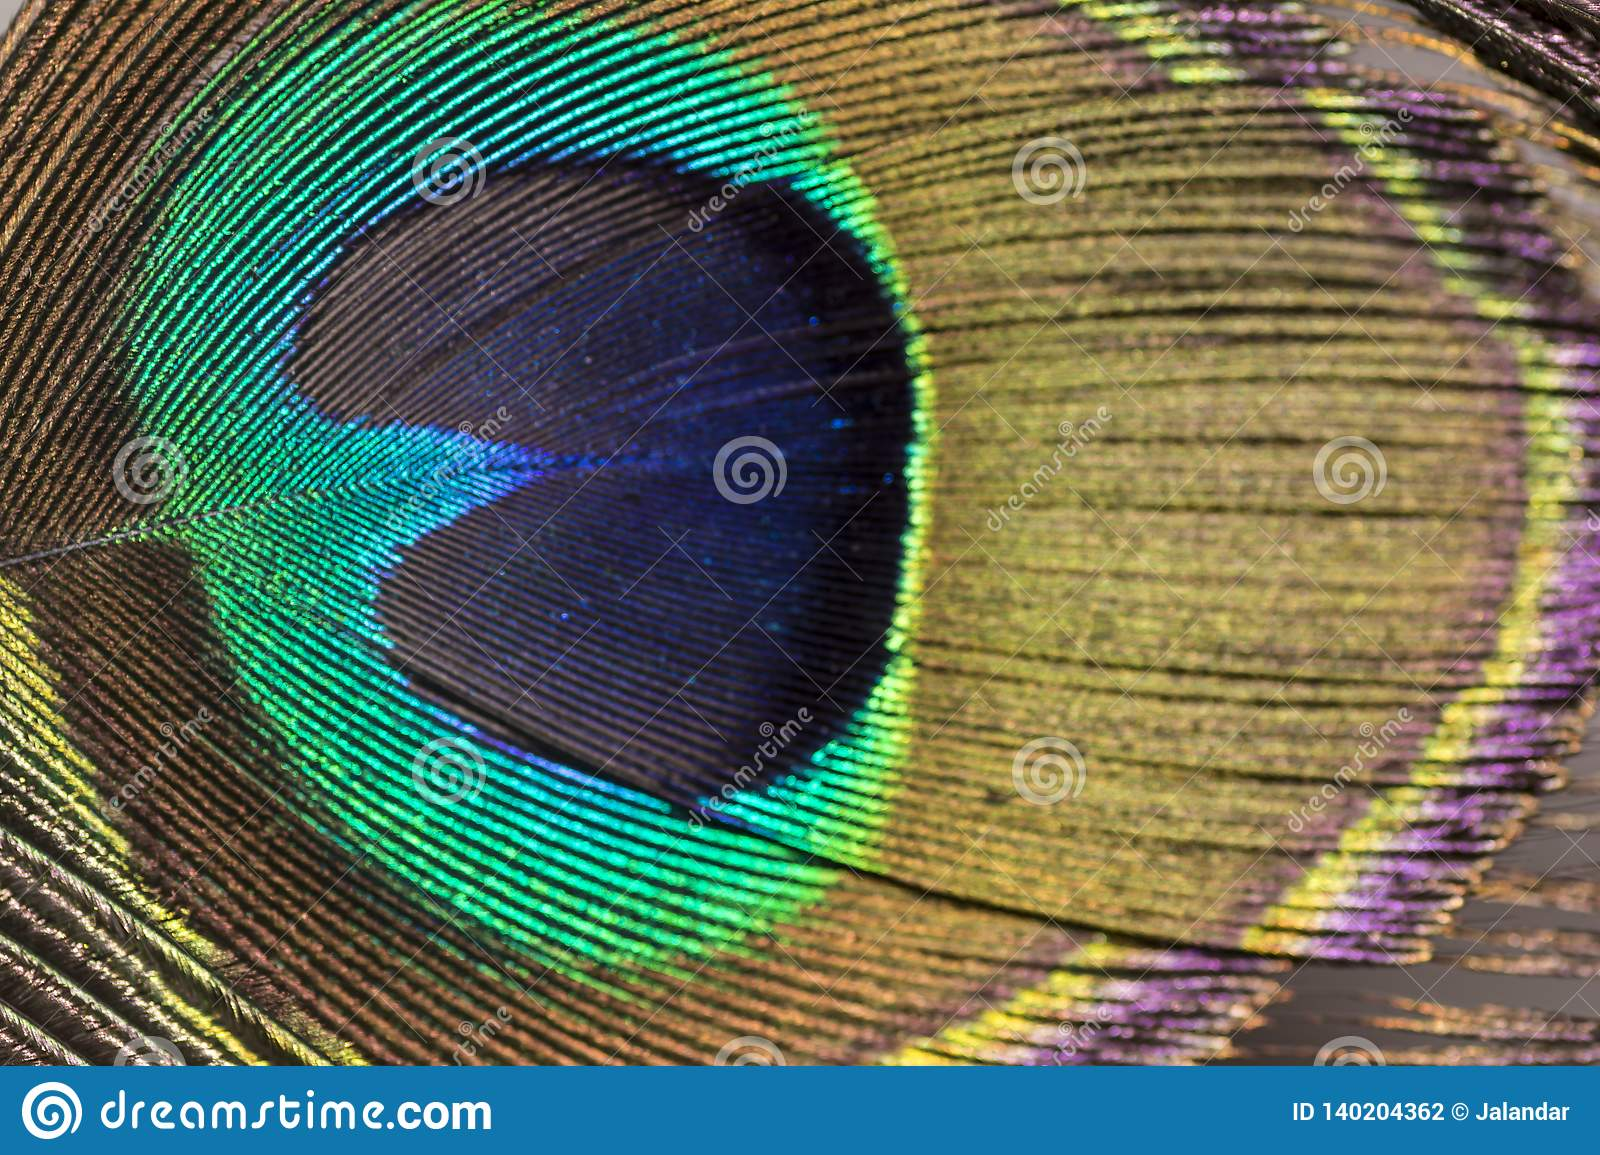 Shining Eye of a Peacock Feather - Close up